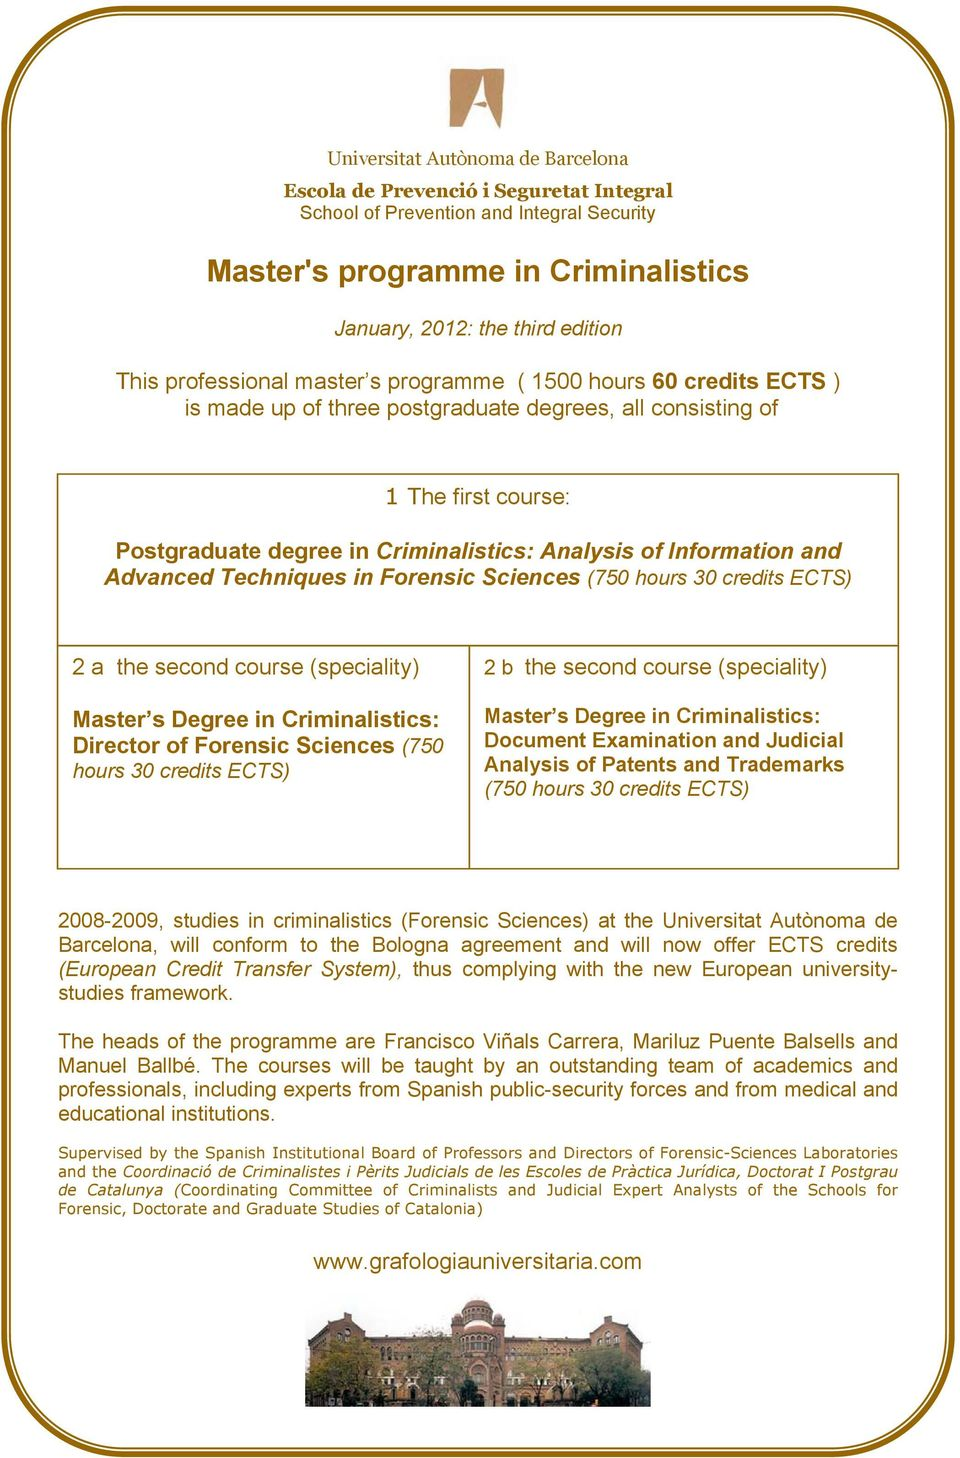 Forensic Sciences (750 hours 30 credits ECTS) 2 a the second course (speciality) Master s Degree in Criminalistics: Director of Forensic Sciences (750 hours 30 credits ECTS) 2 b the second course